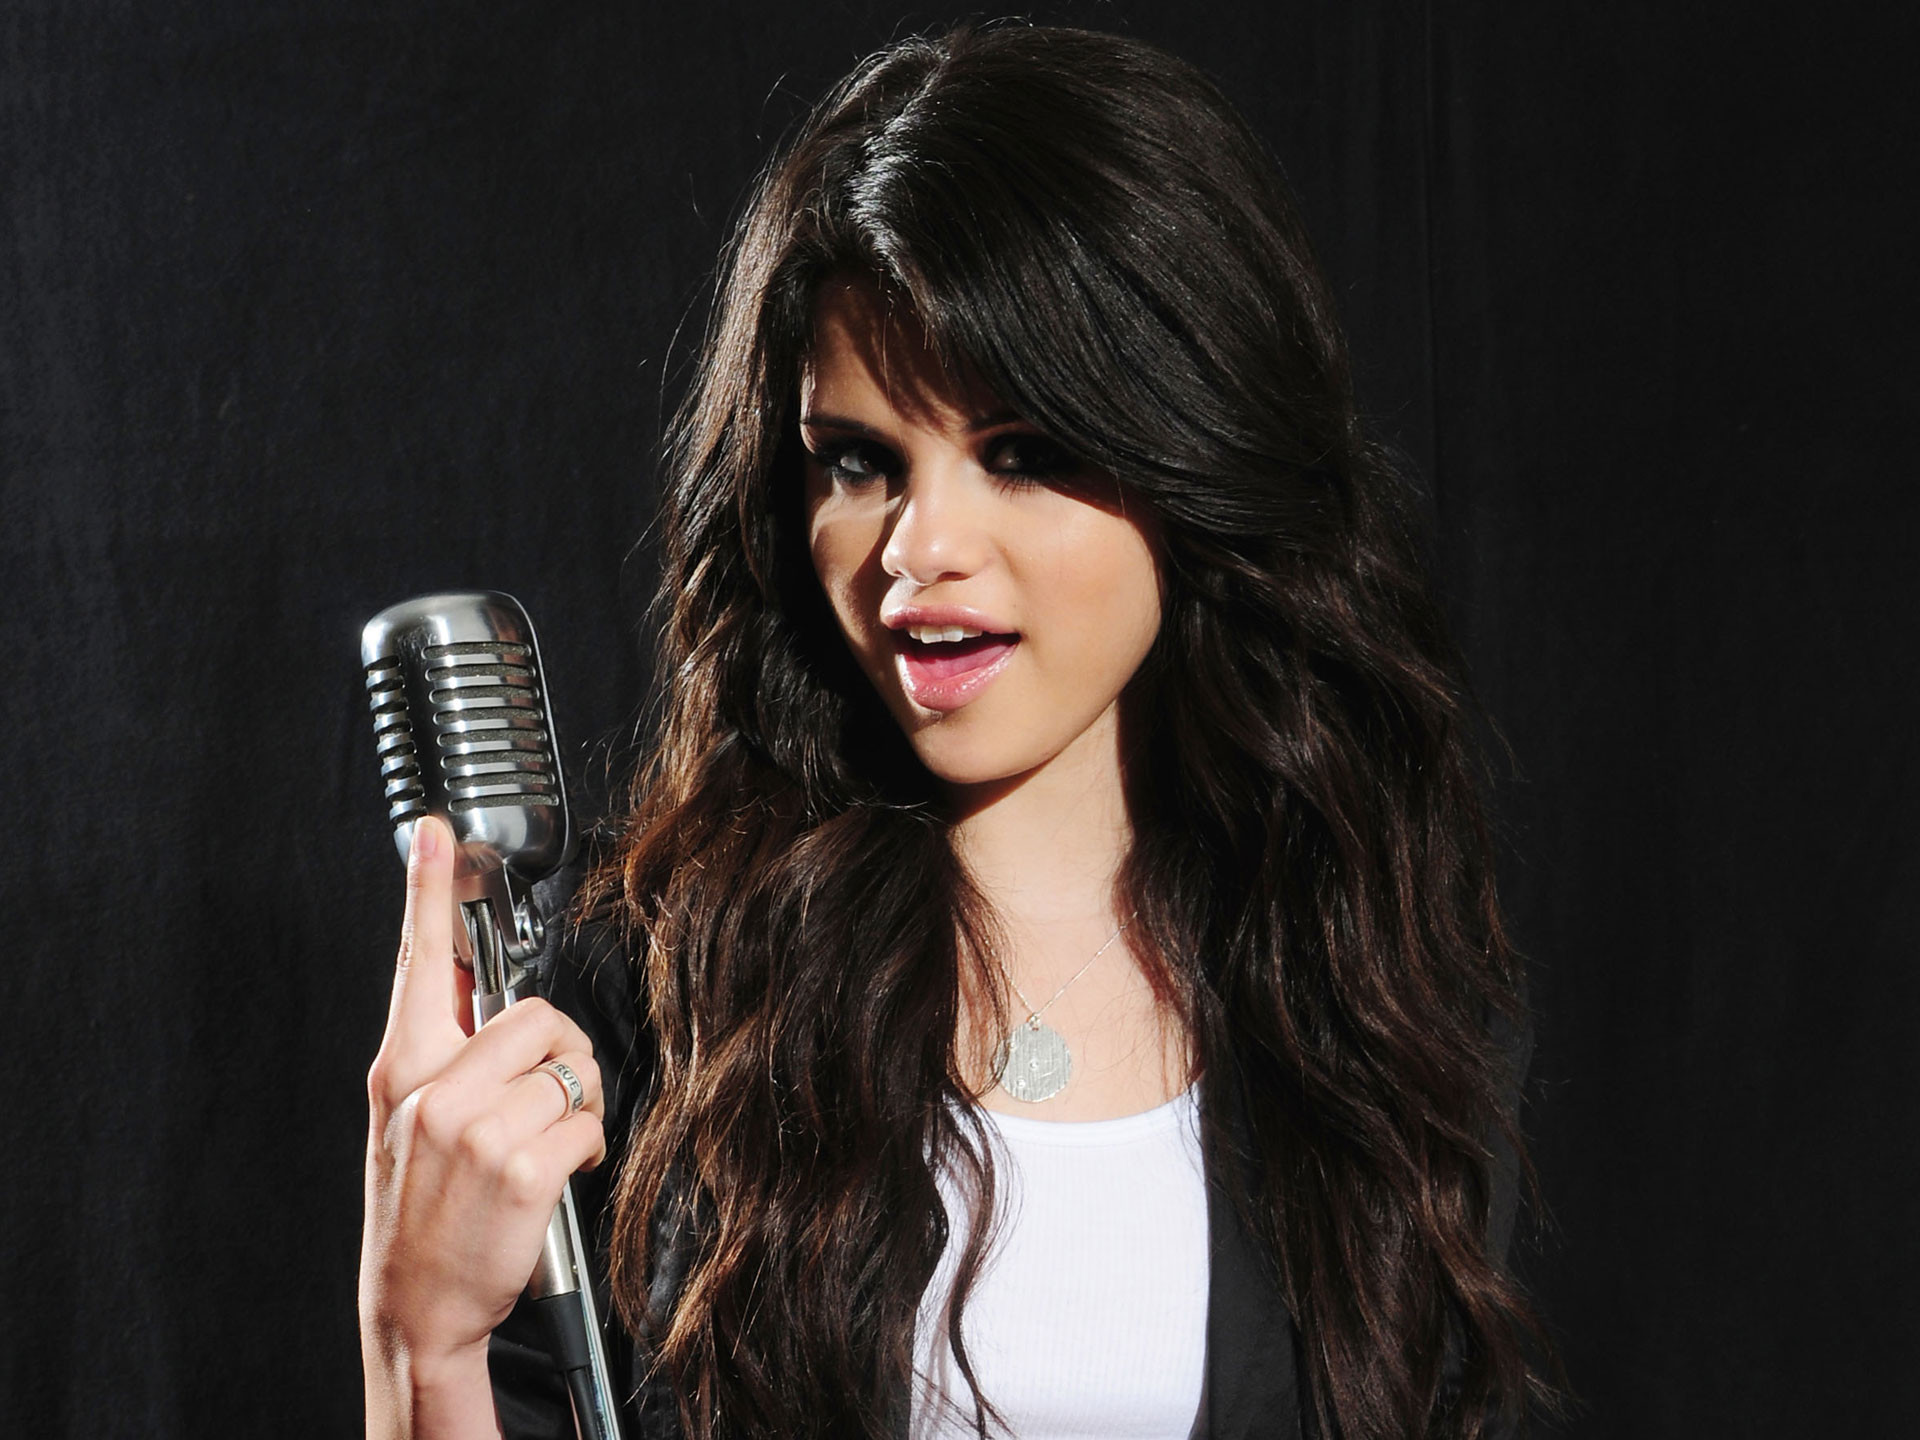 1920x1440 Free Selena Gomez HD Wallpapers PixelsTalk Collection Of Hd On HDWallpapers